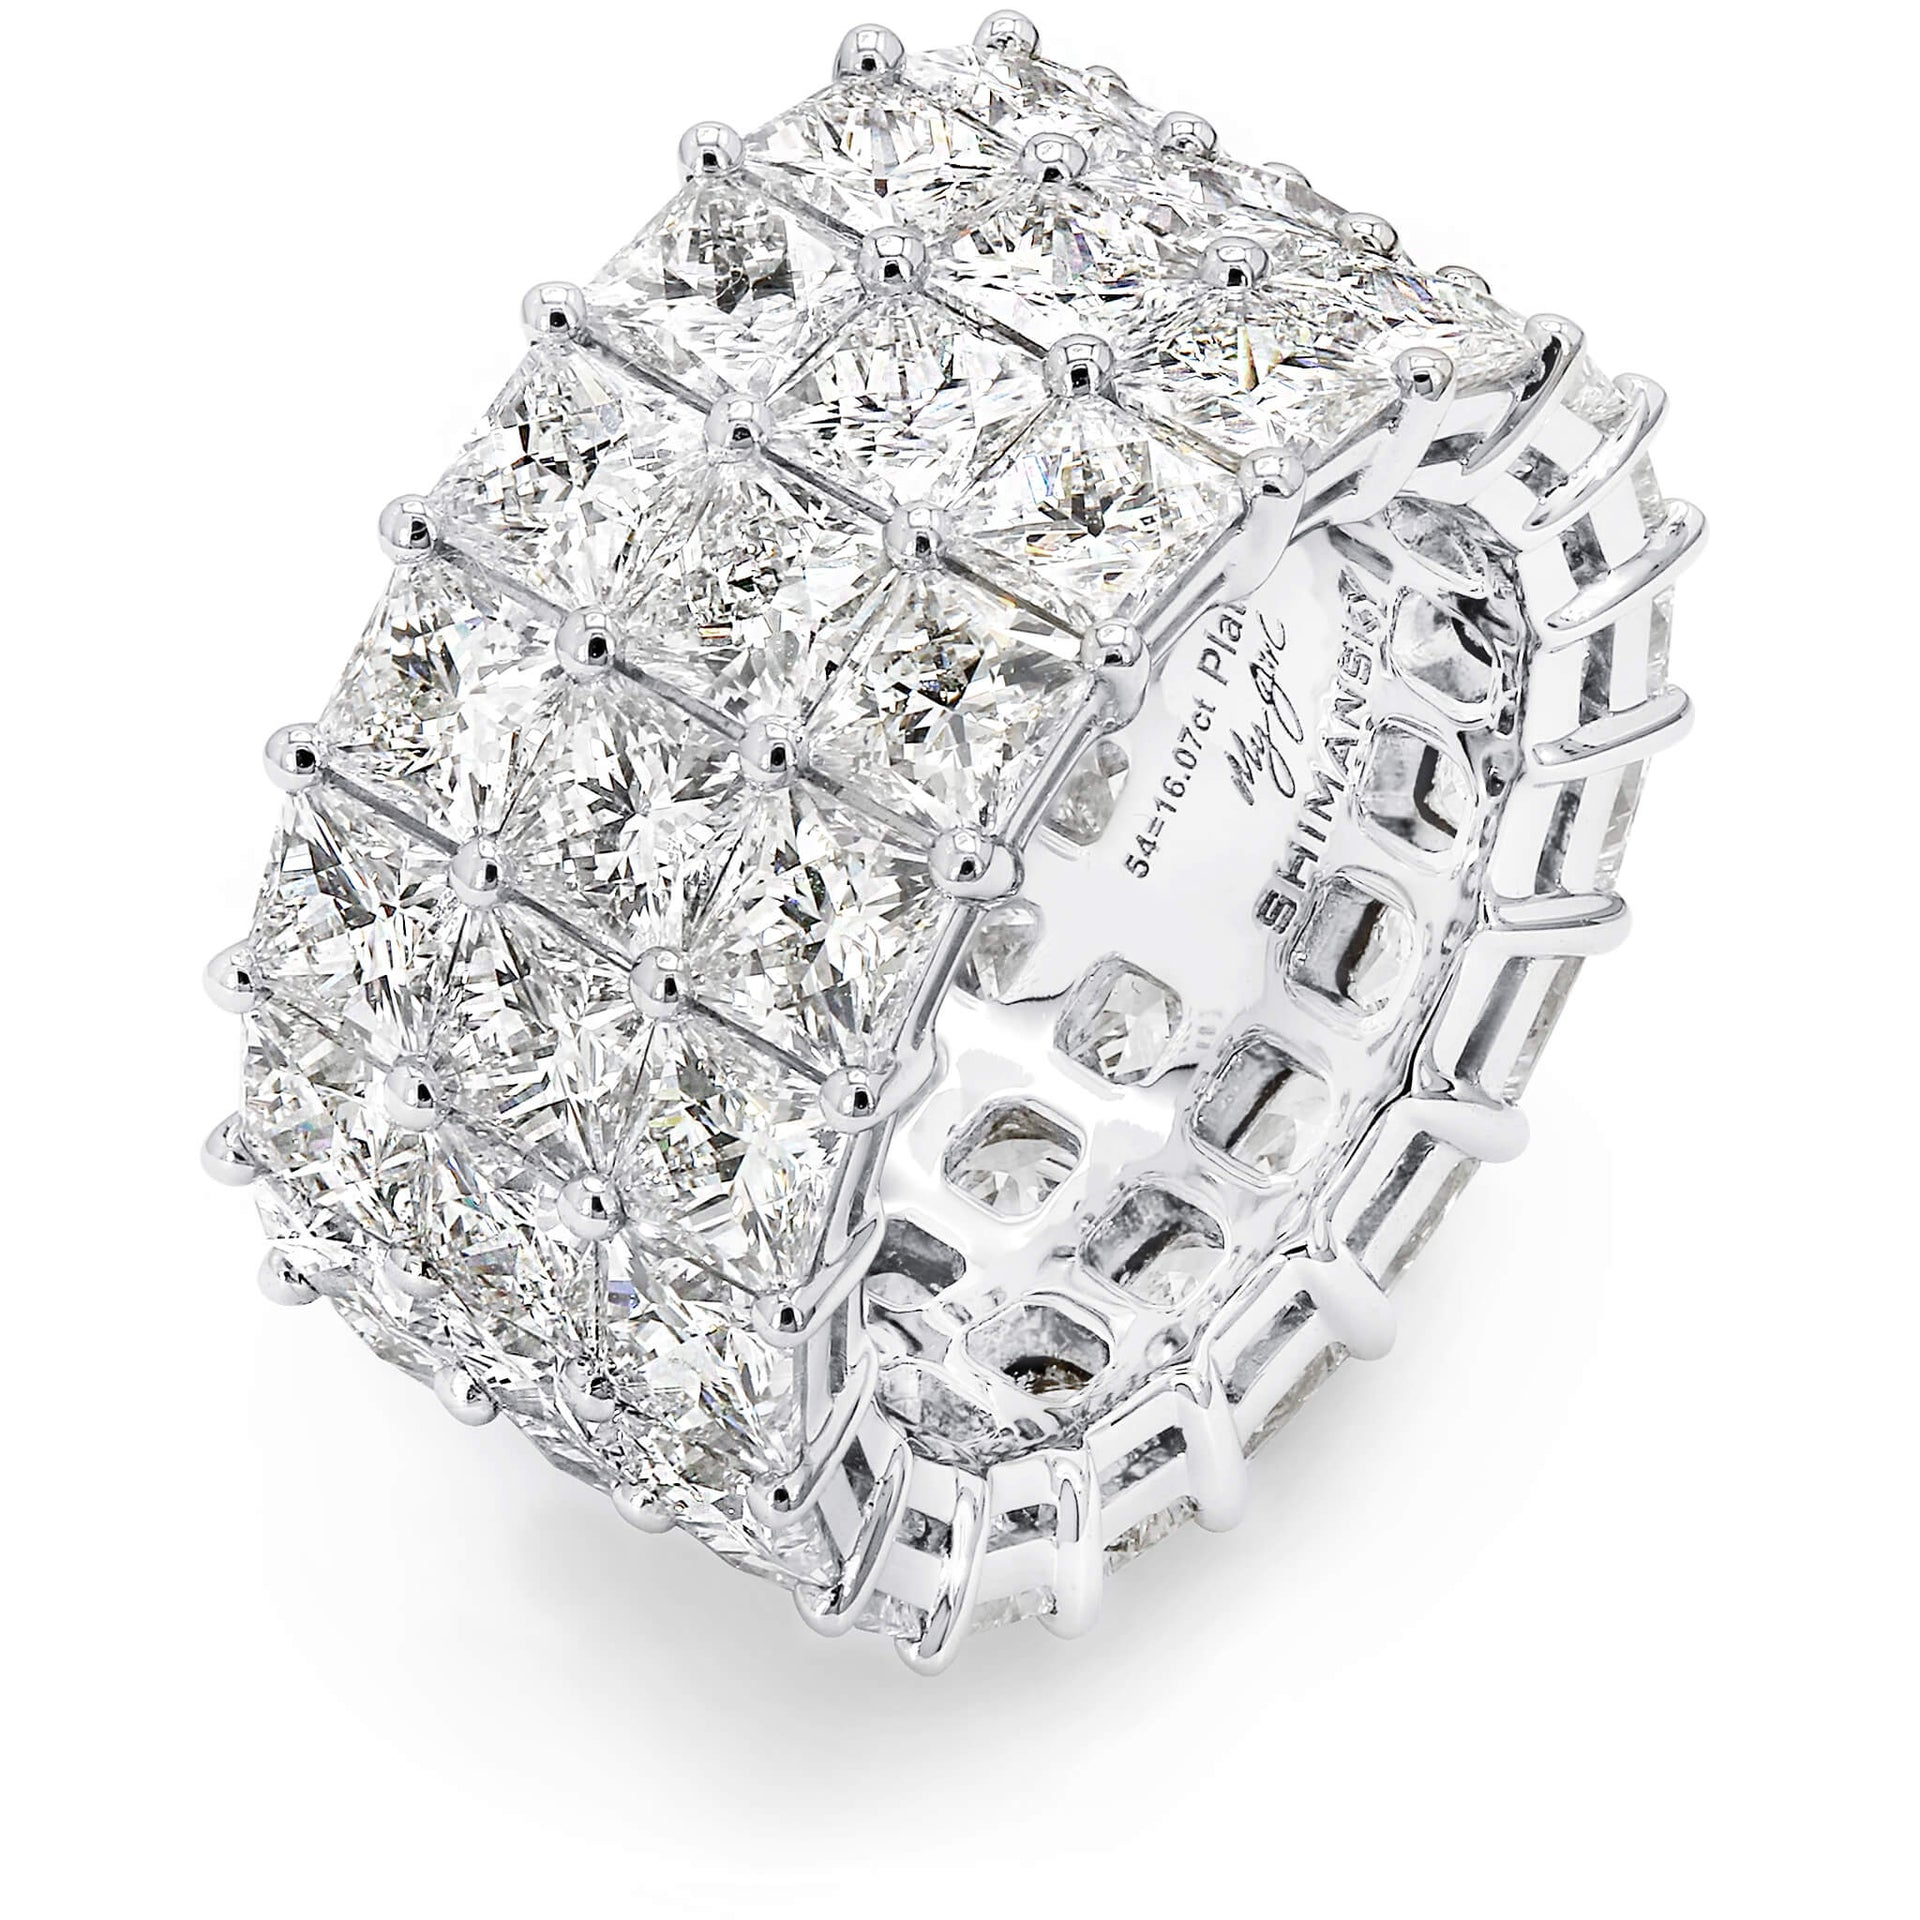 16.07 Carat My Girl Triple Row Eternity Diamond Ring in Platinum 3D View